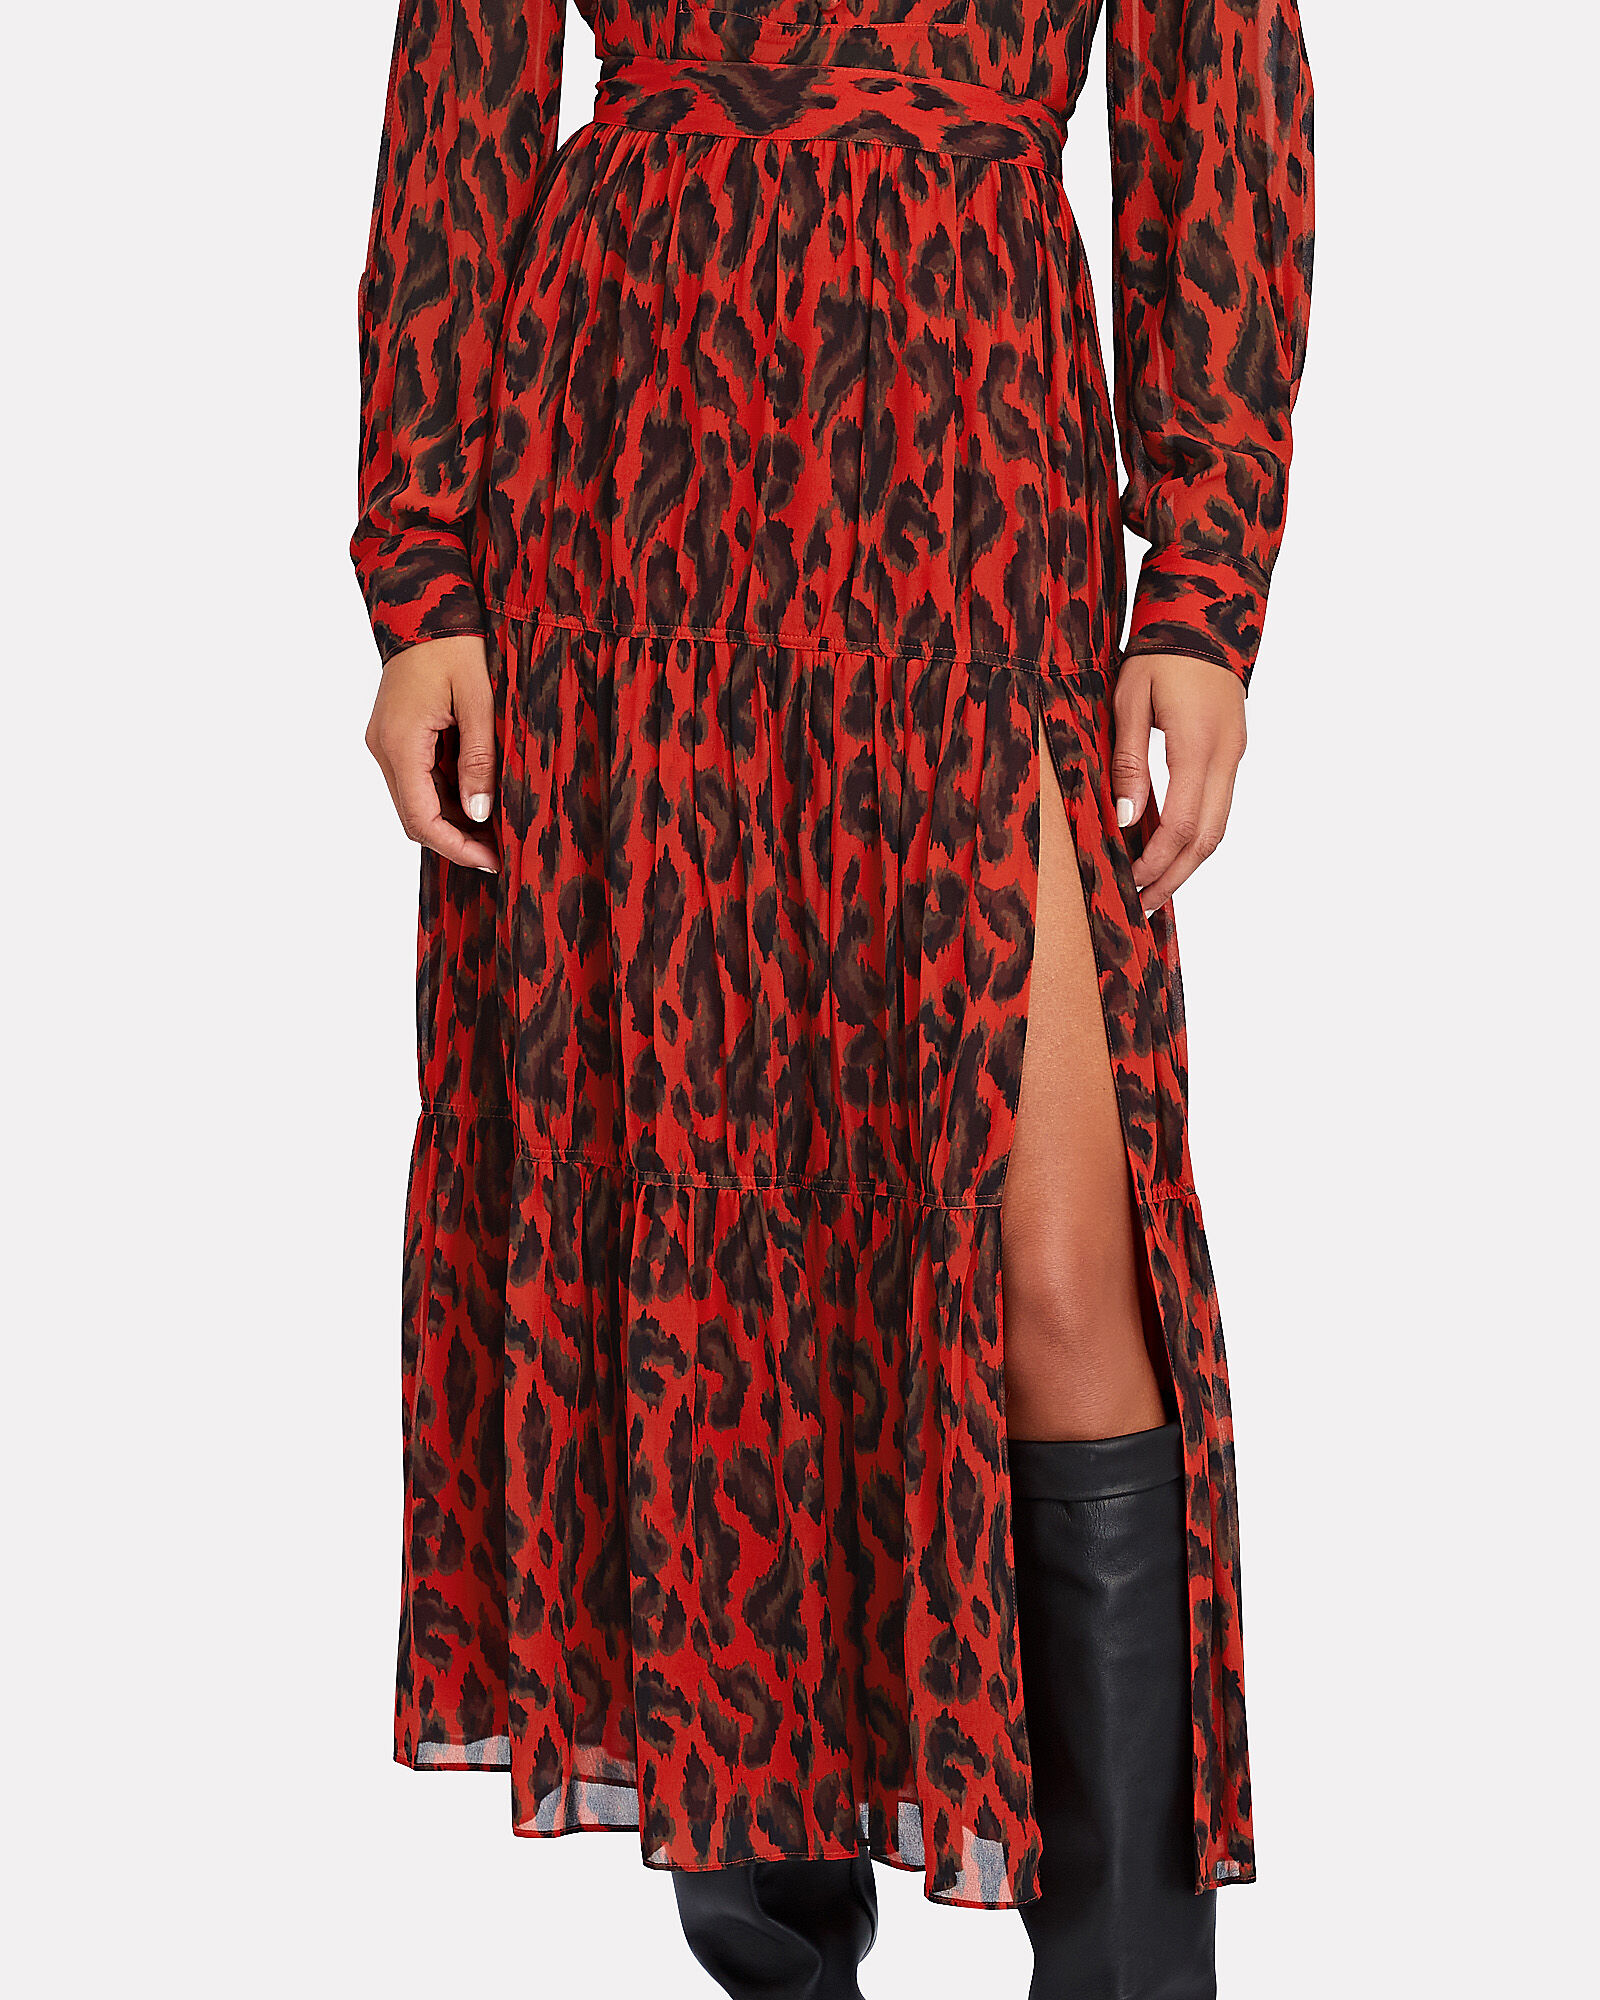 Qualley Leopard Print Maxi Skirt, RED, hi-res